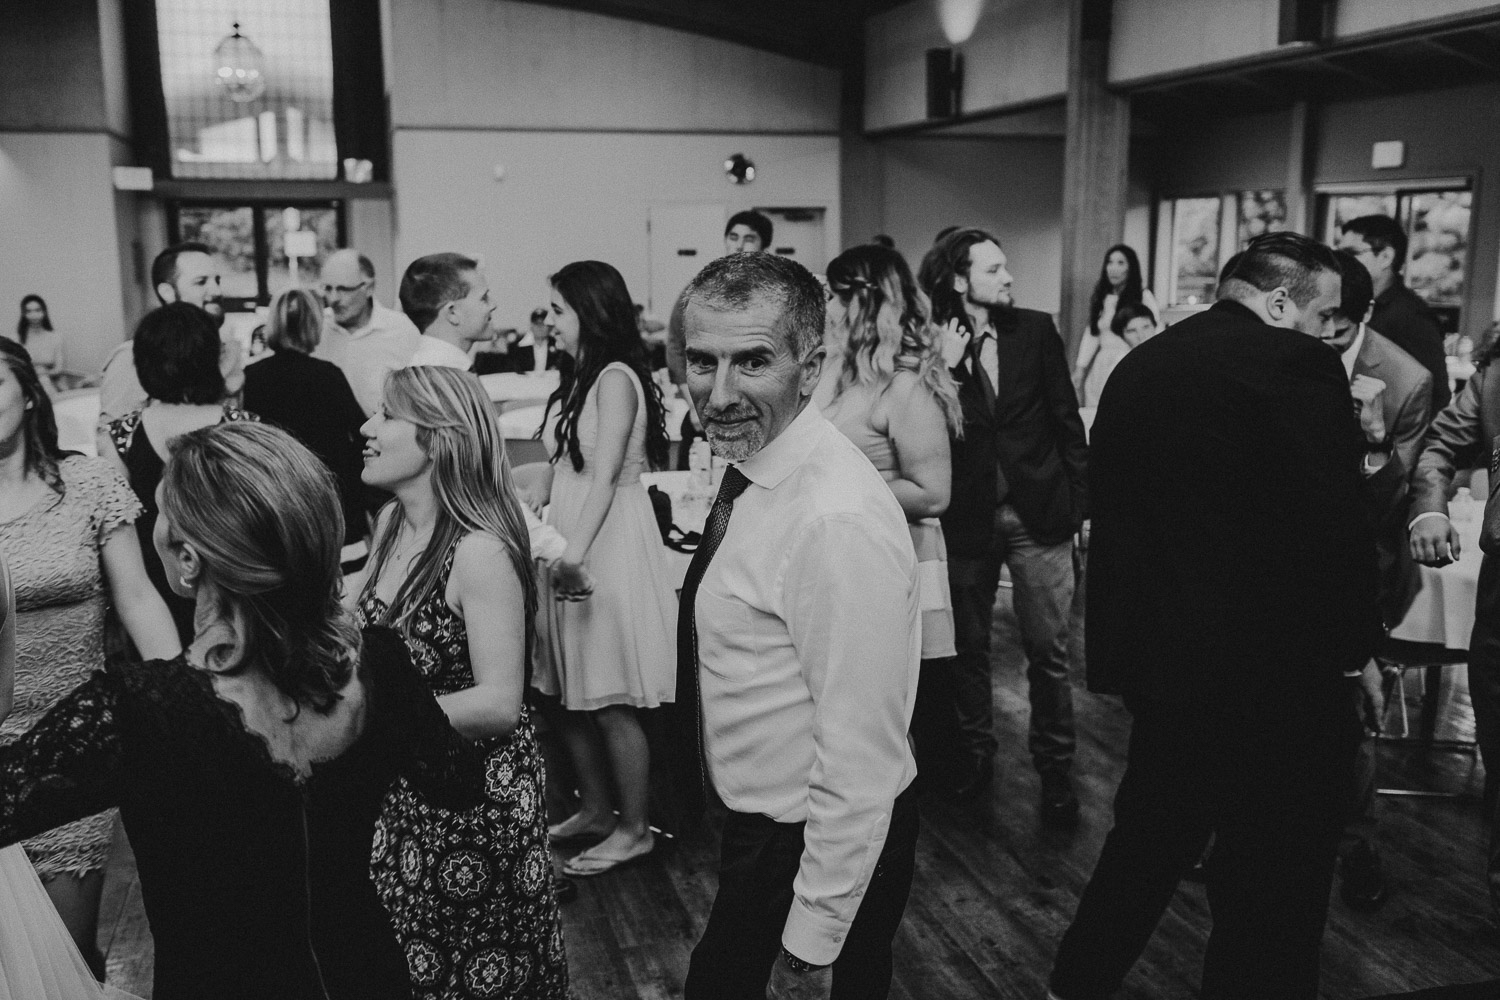 Image of people dance at reception